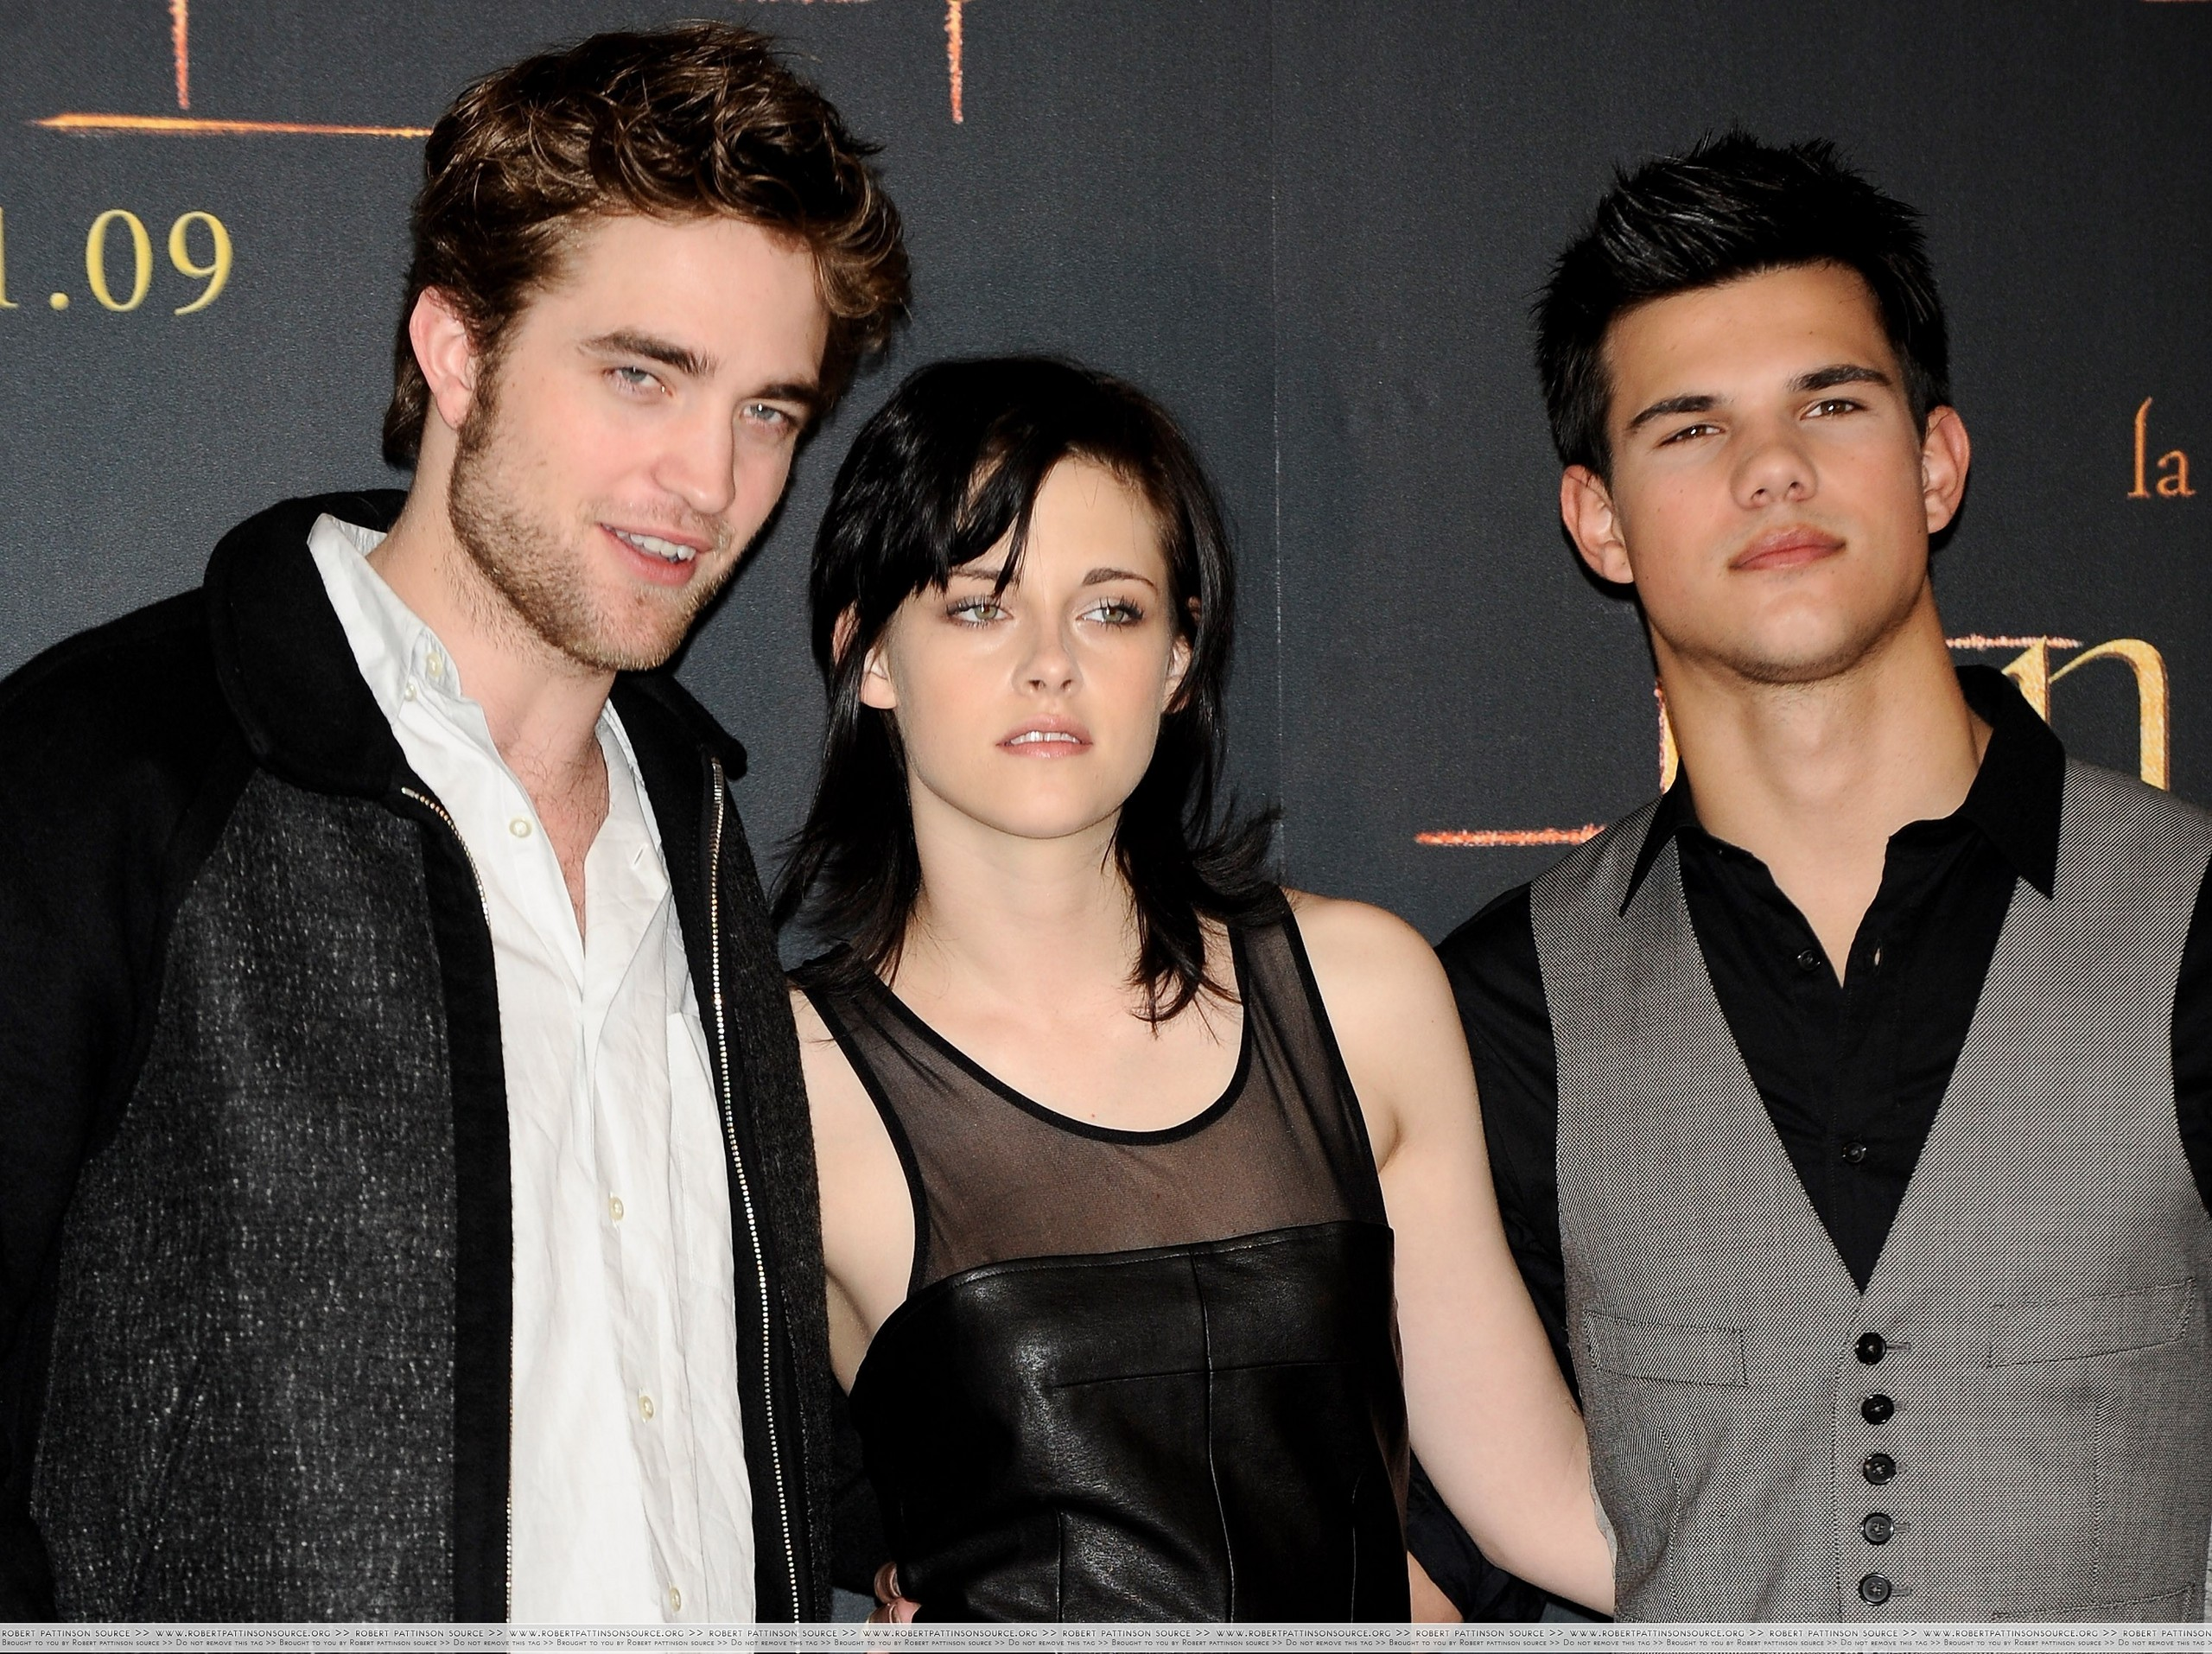 http://images2.fanpop.com/image/photos/9000000/First-pics-from-the-Madrid-Press-Conference-twilight-series-9023998-2560-1914.jpg